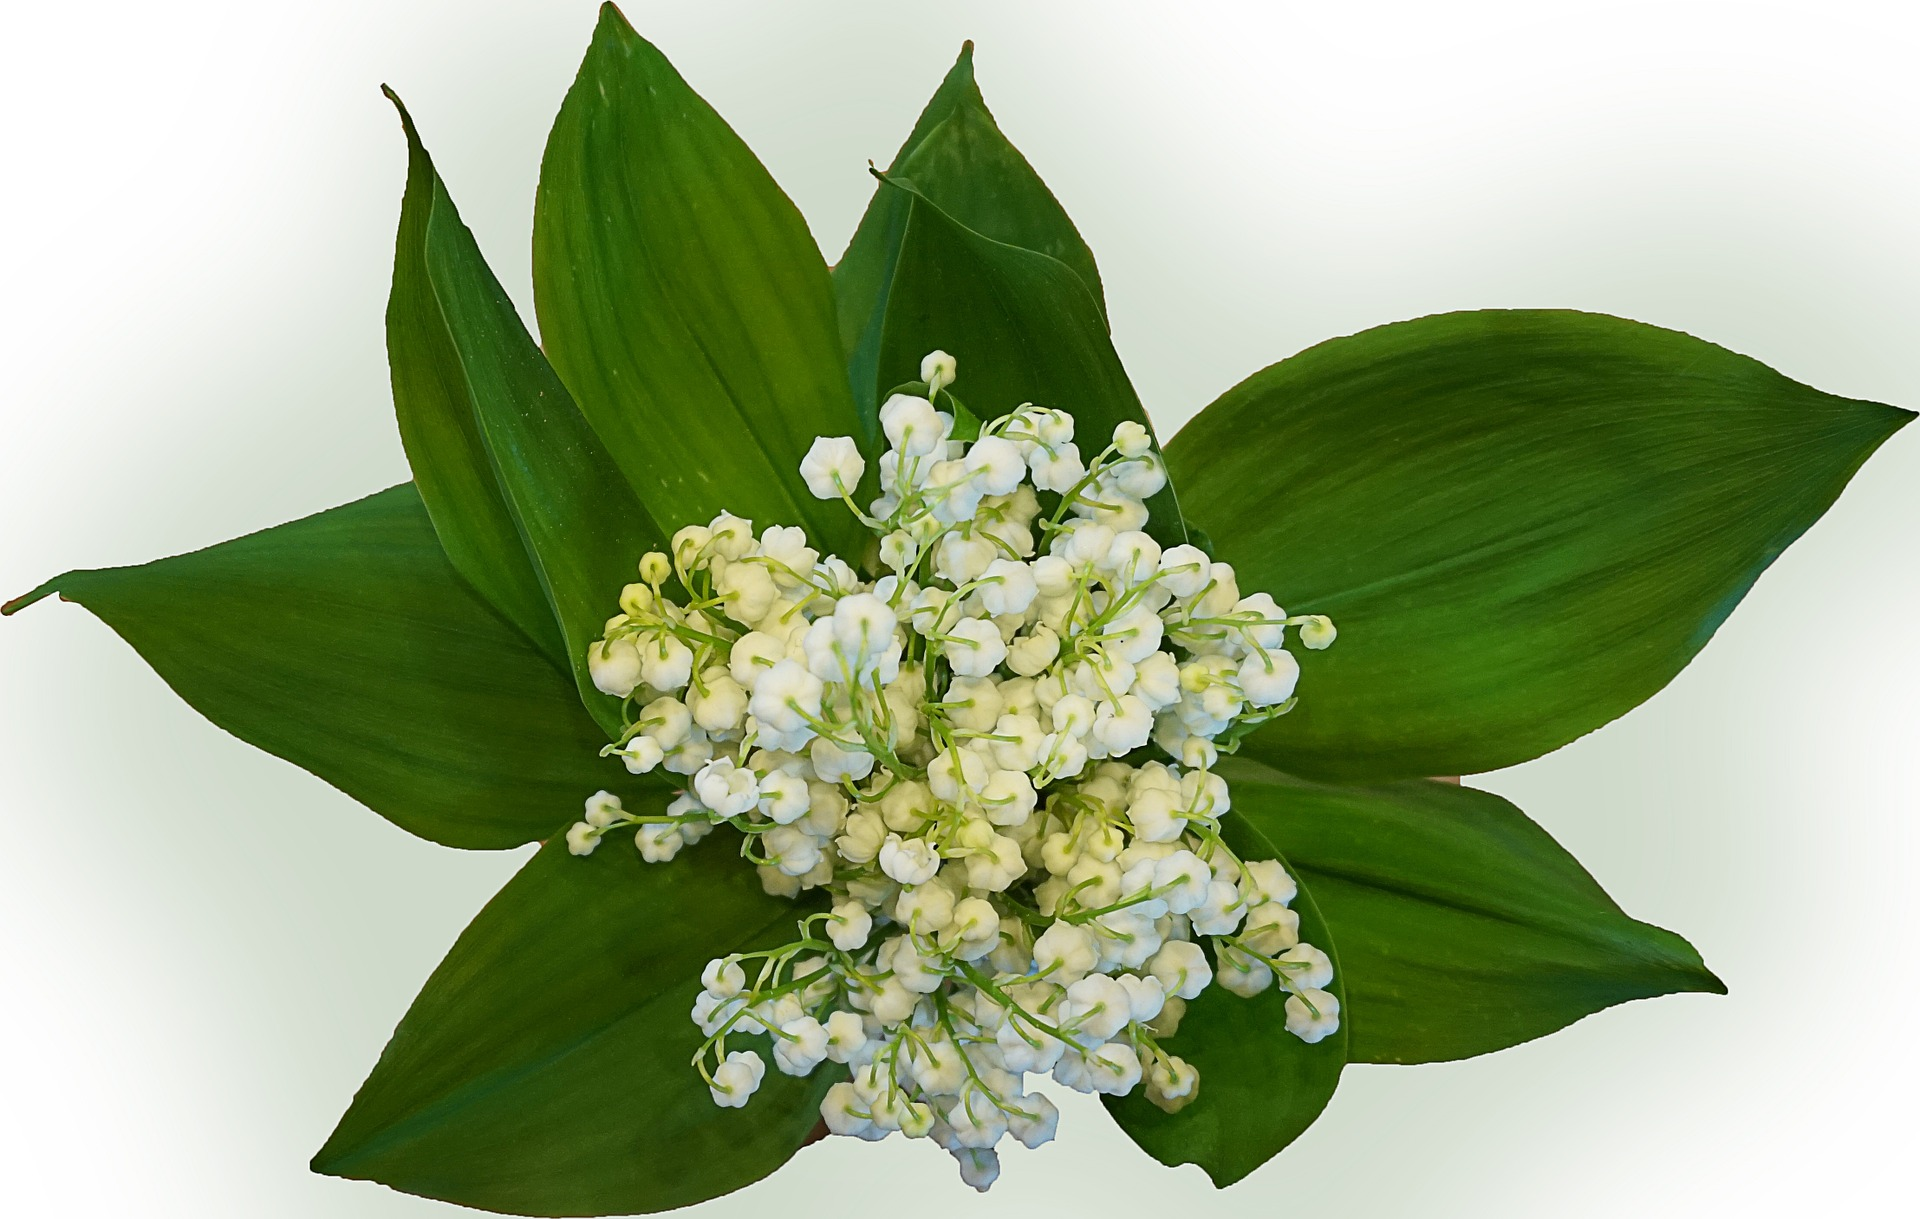 lily-of-the-valley-771108_1920